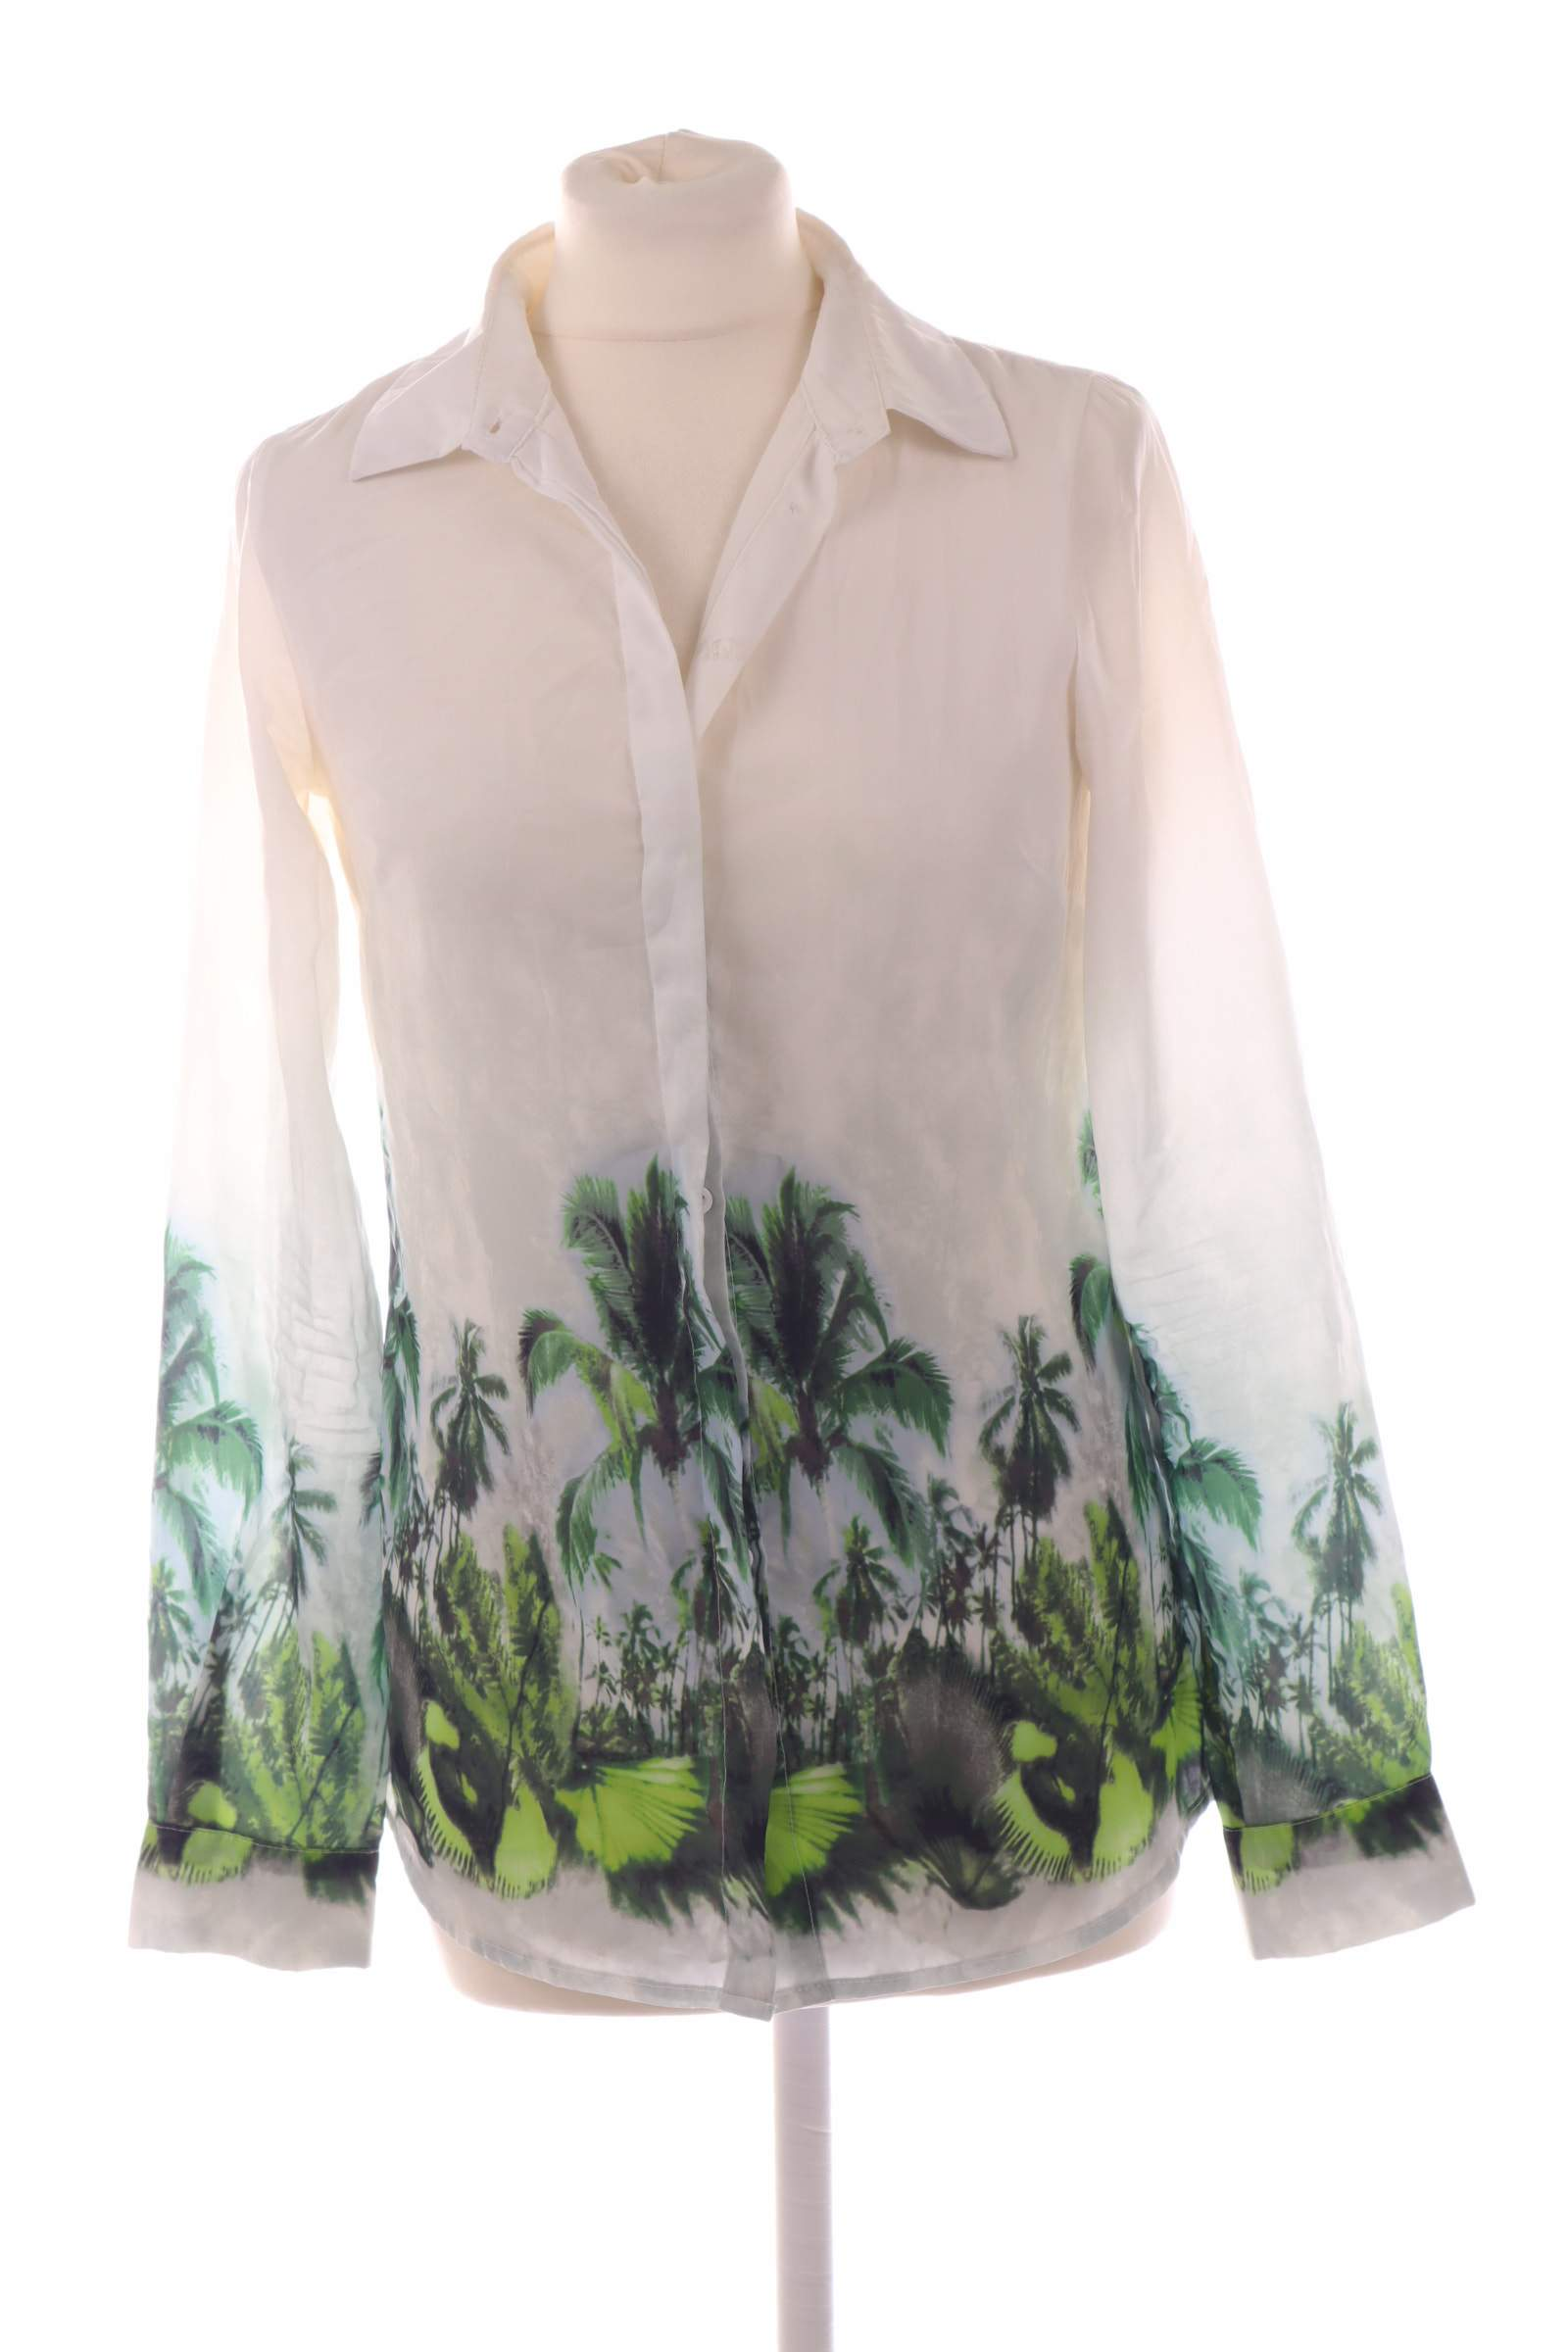 Monton White Top